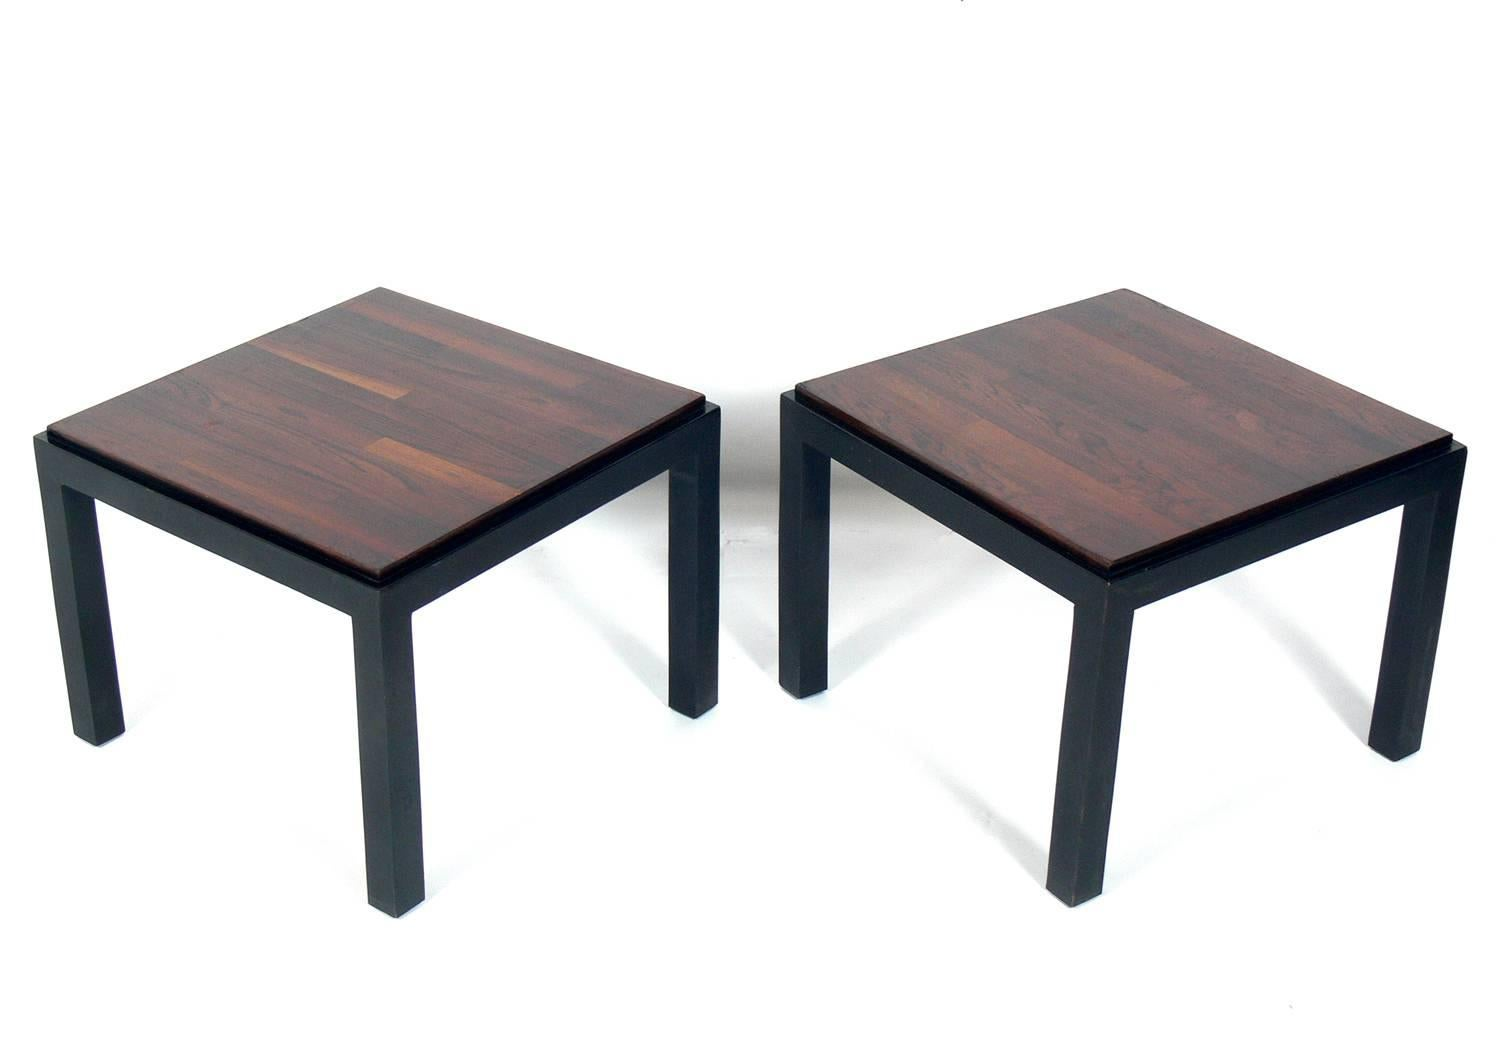 Pair Of Rosewood And Black Lacquer End Tables, Designed By Milo Baughman  For Thayer Coggin